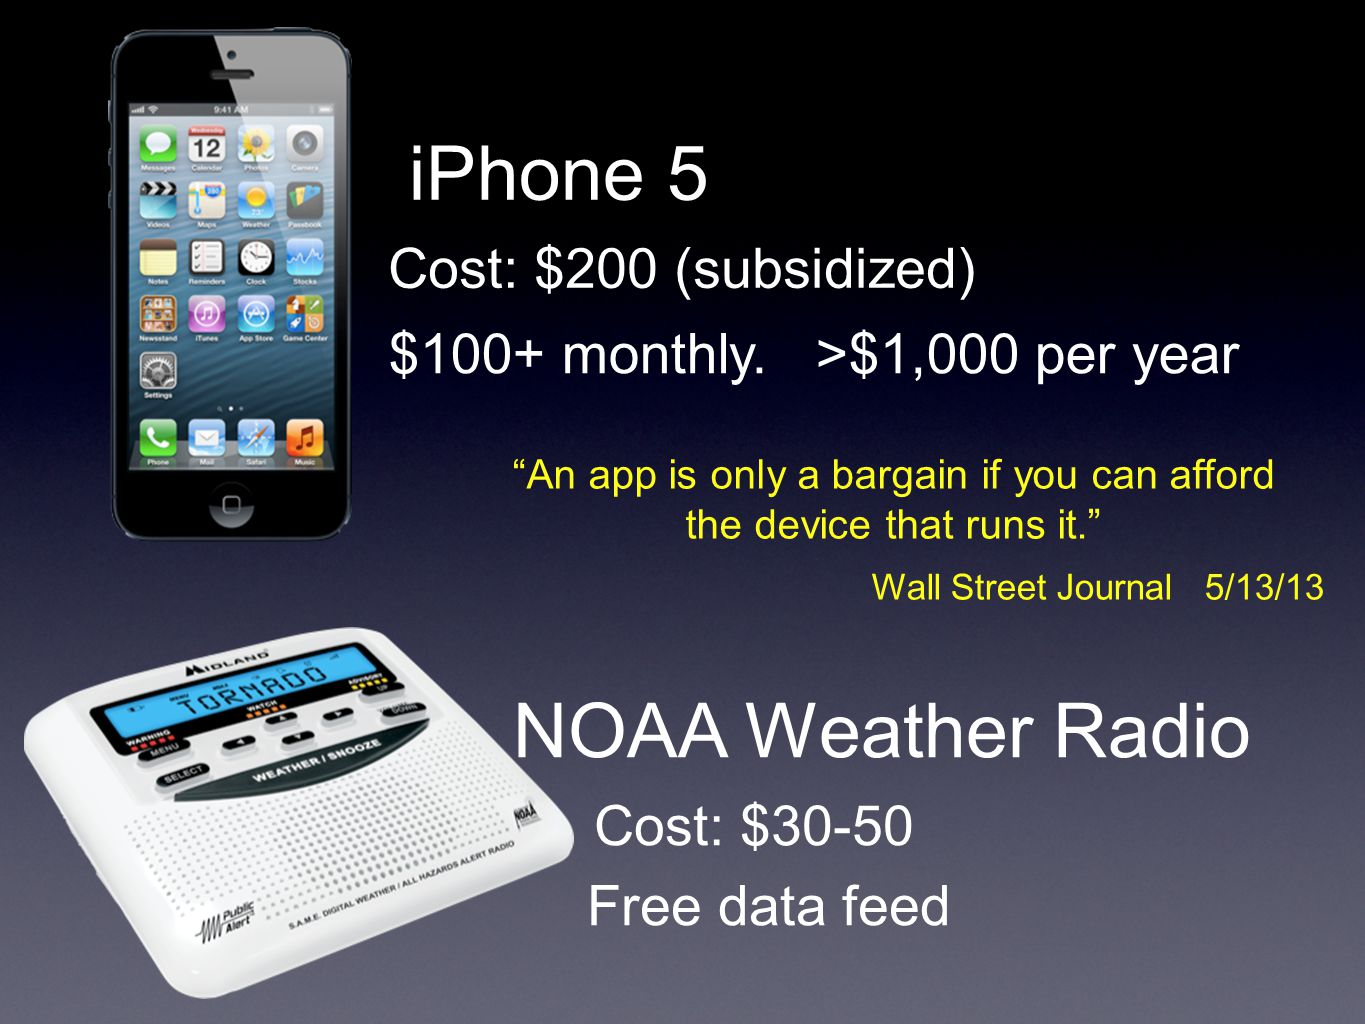 iPhone 5 Cost: $200 (subsidized) $100+ monthly.